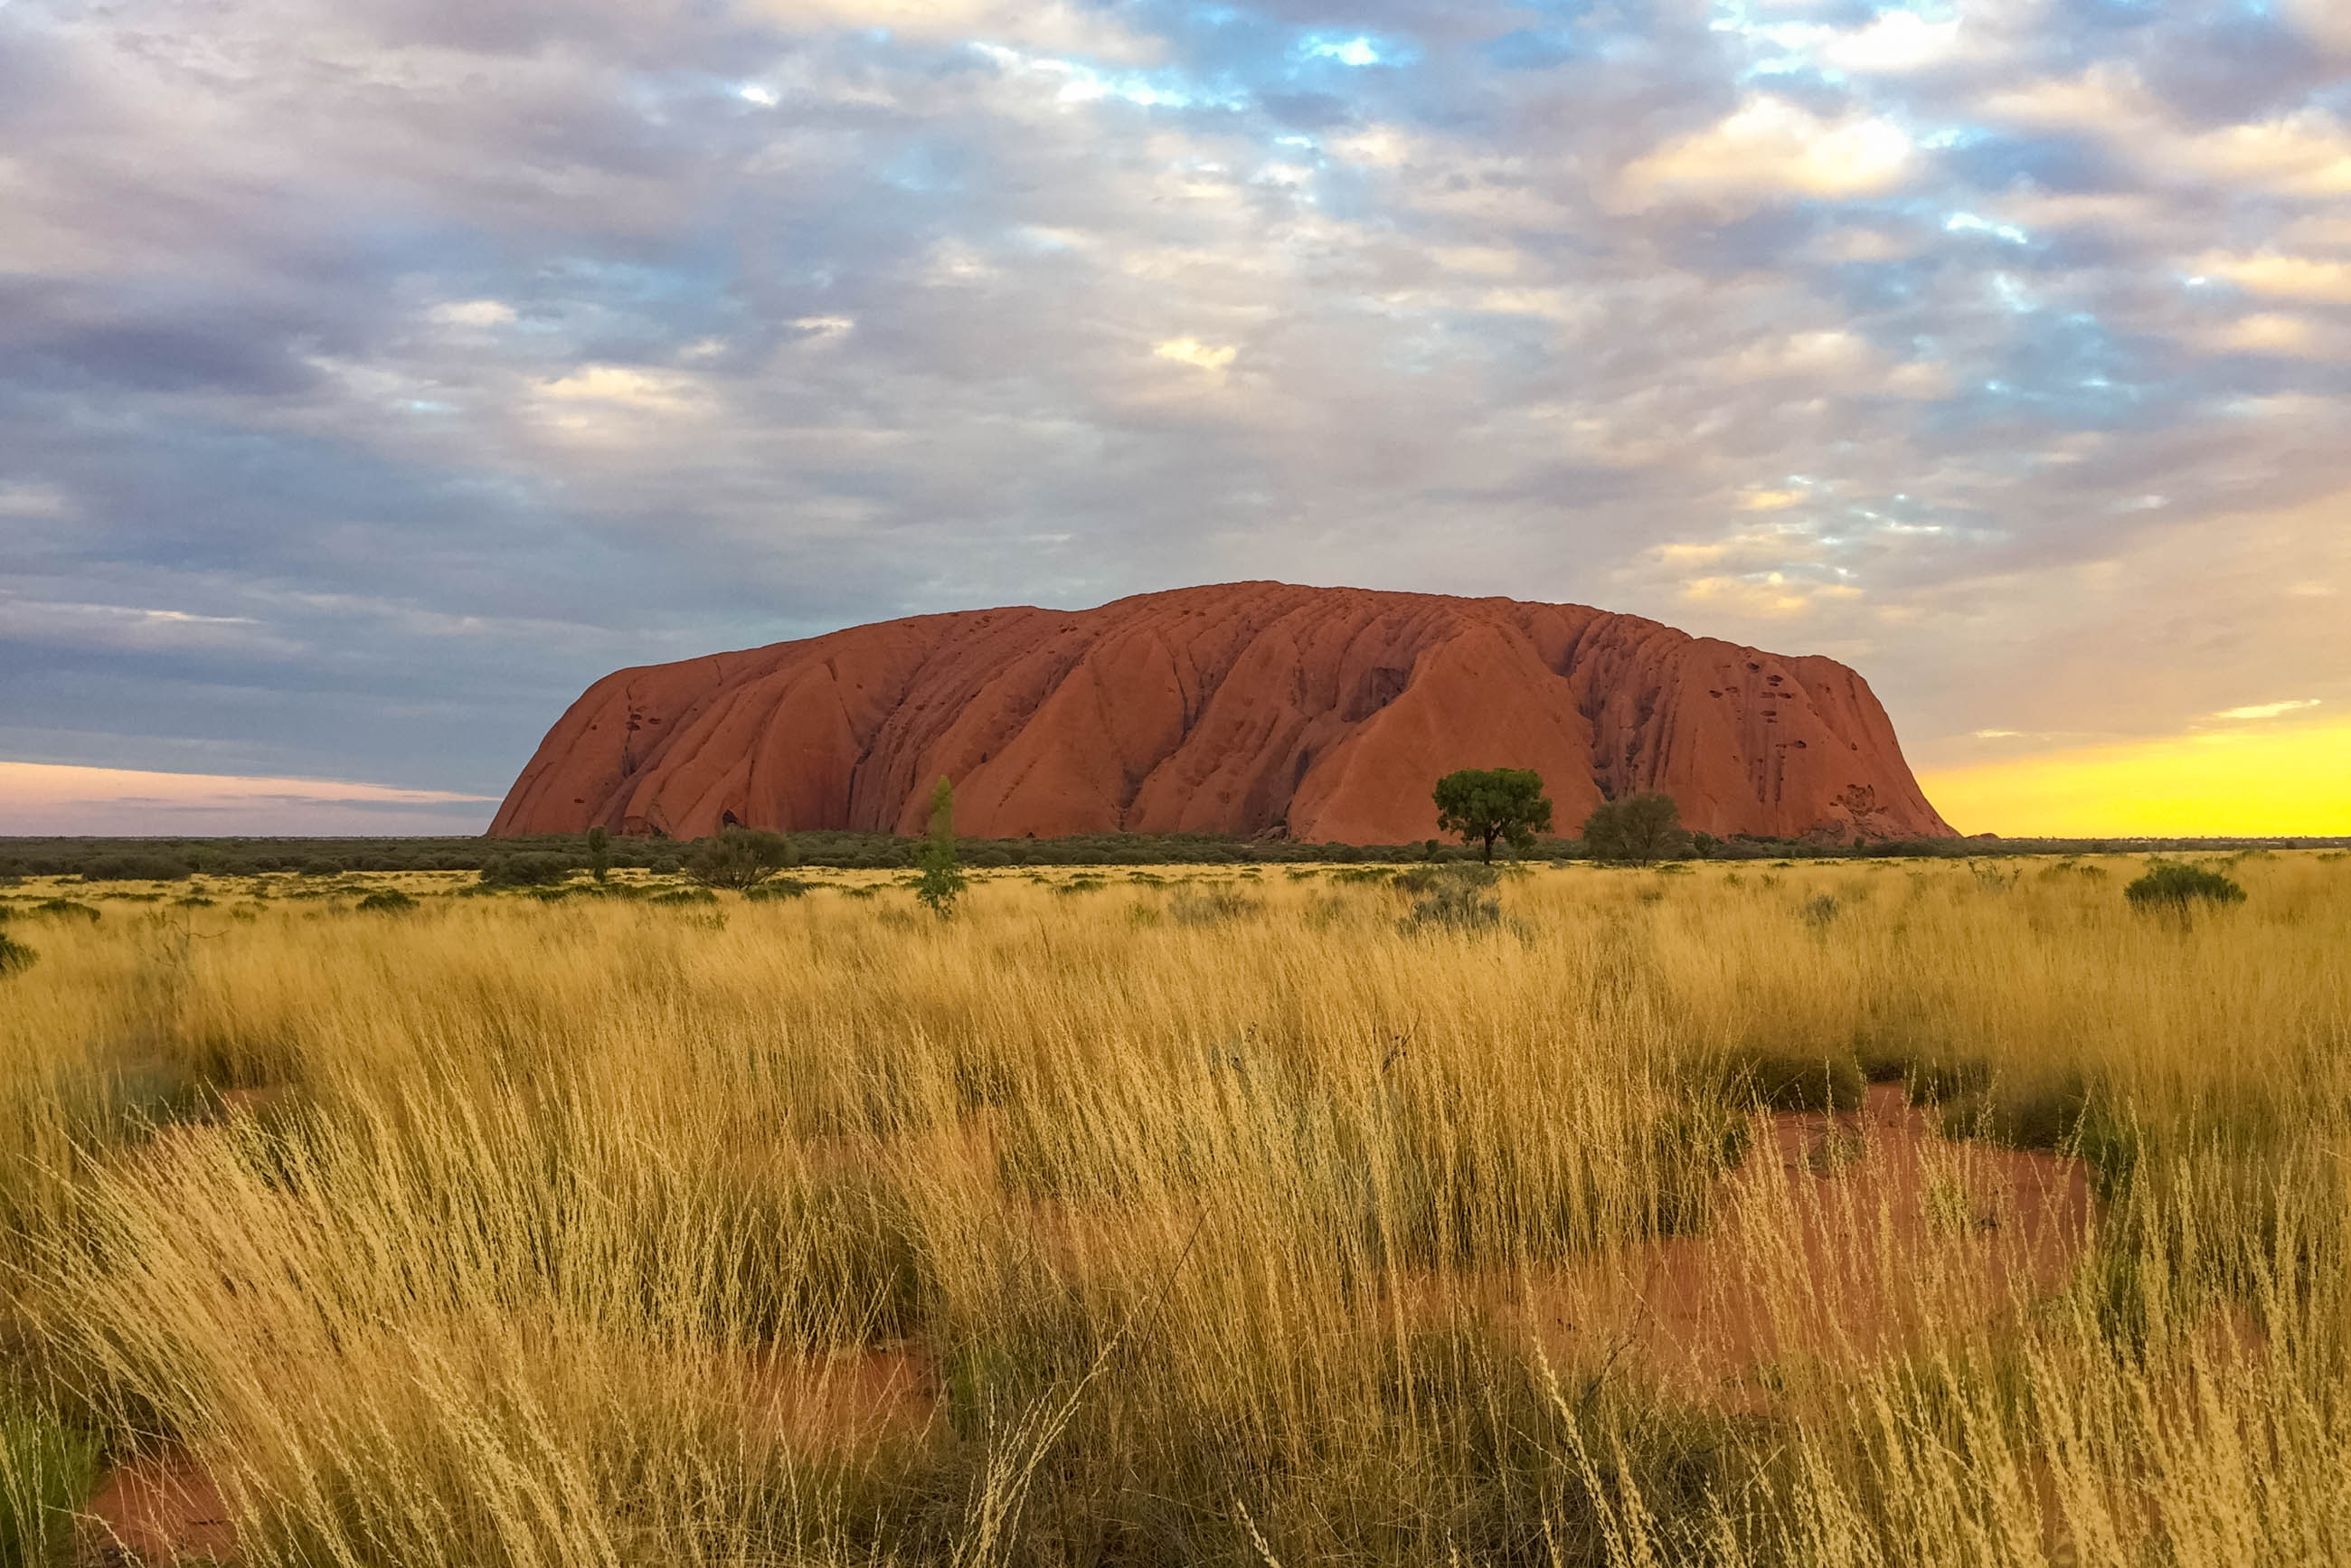 https://bubo.sk/uploads/galleries/5028/veron_hulikova_australia_severne_teritorium_uluru4.jpg